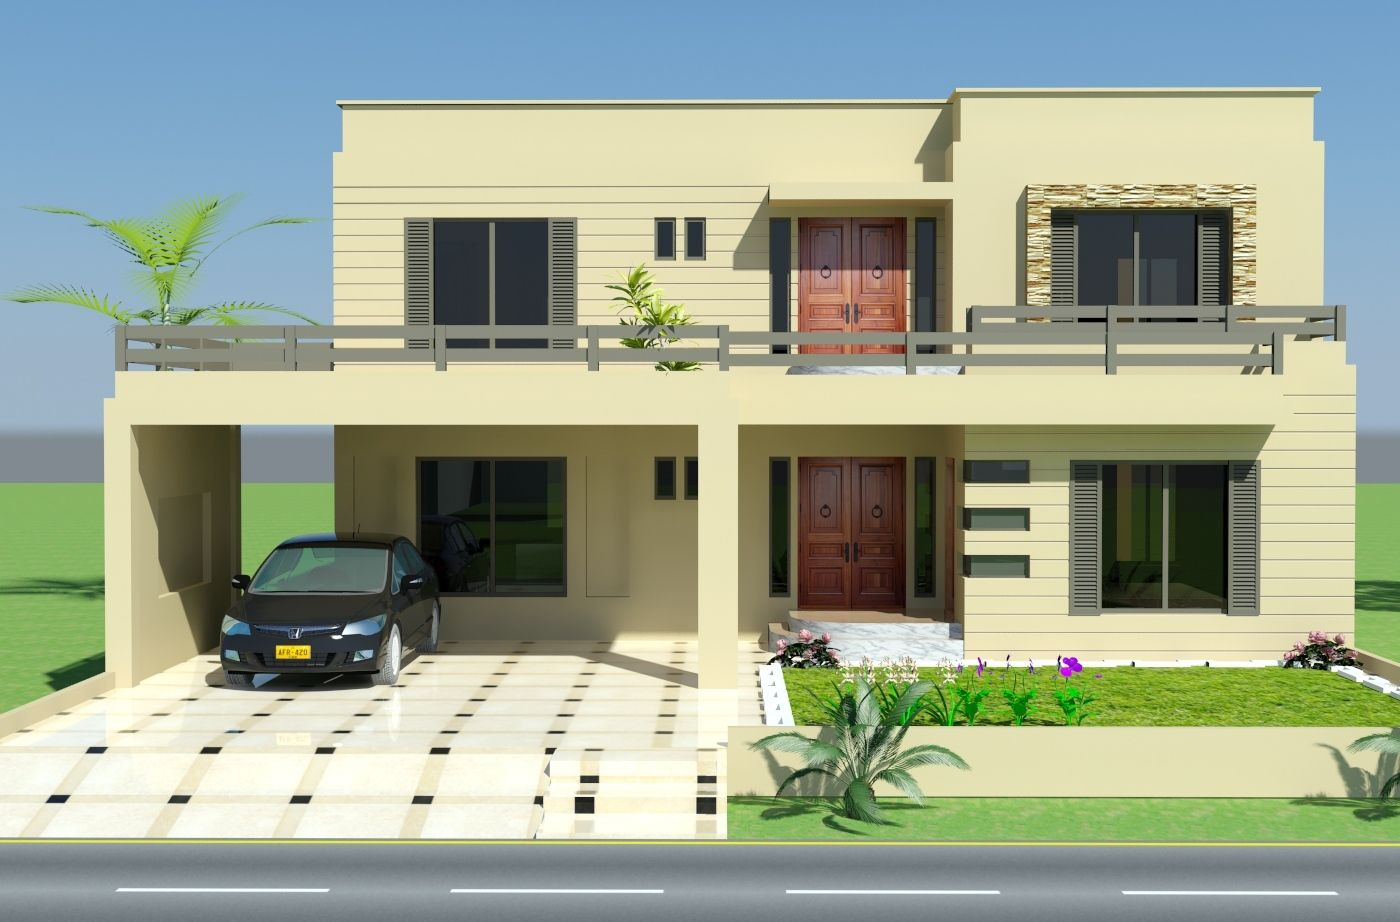 Exterior house design front elevation mi futura casa for Exterior design homes